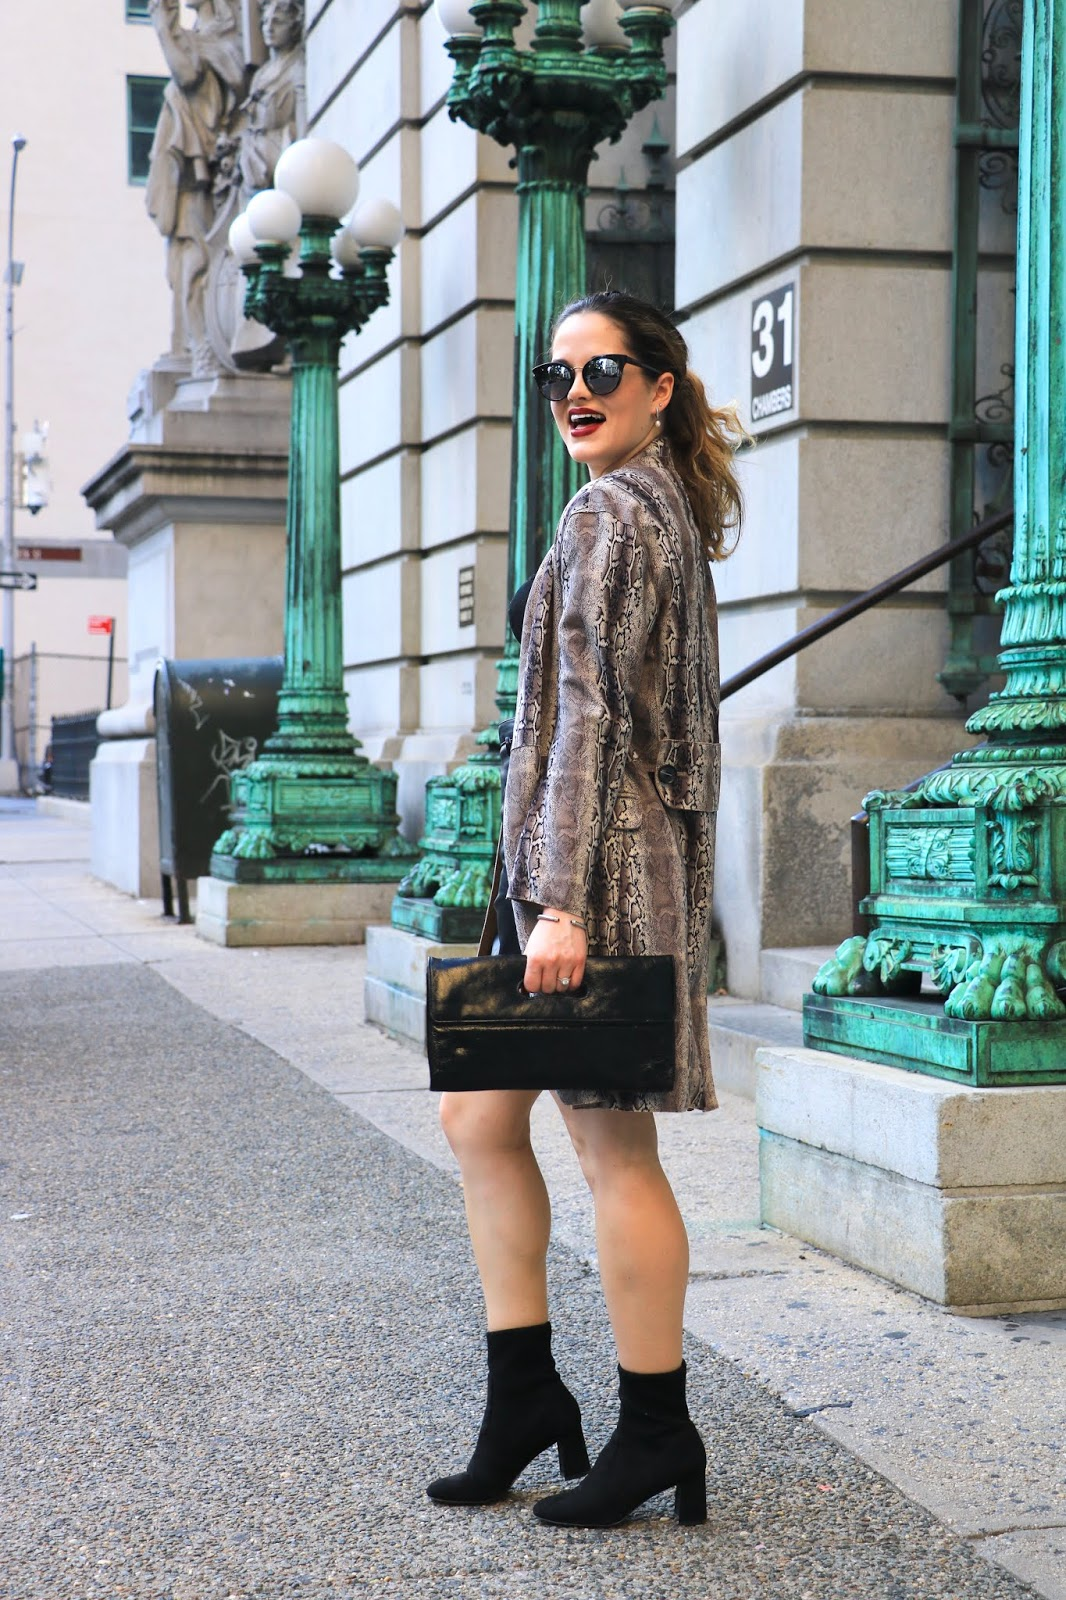 Nyc fashion blogger Kathleen Harper wearing a python print jacket.